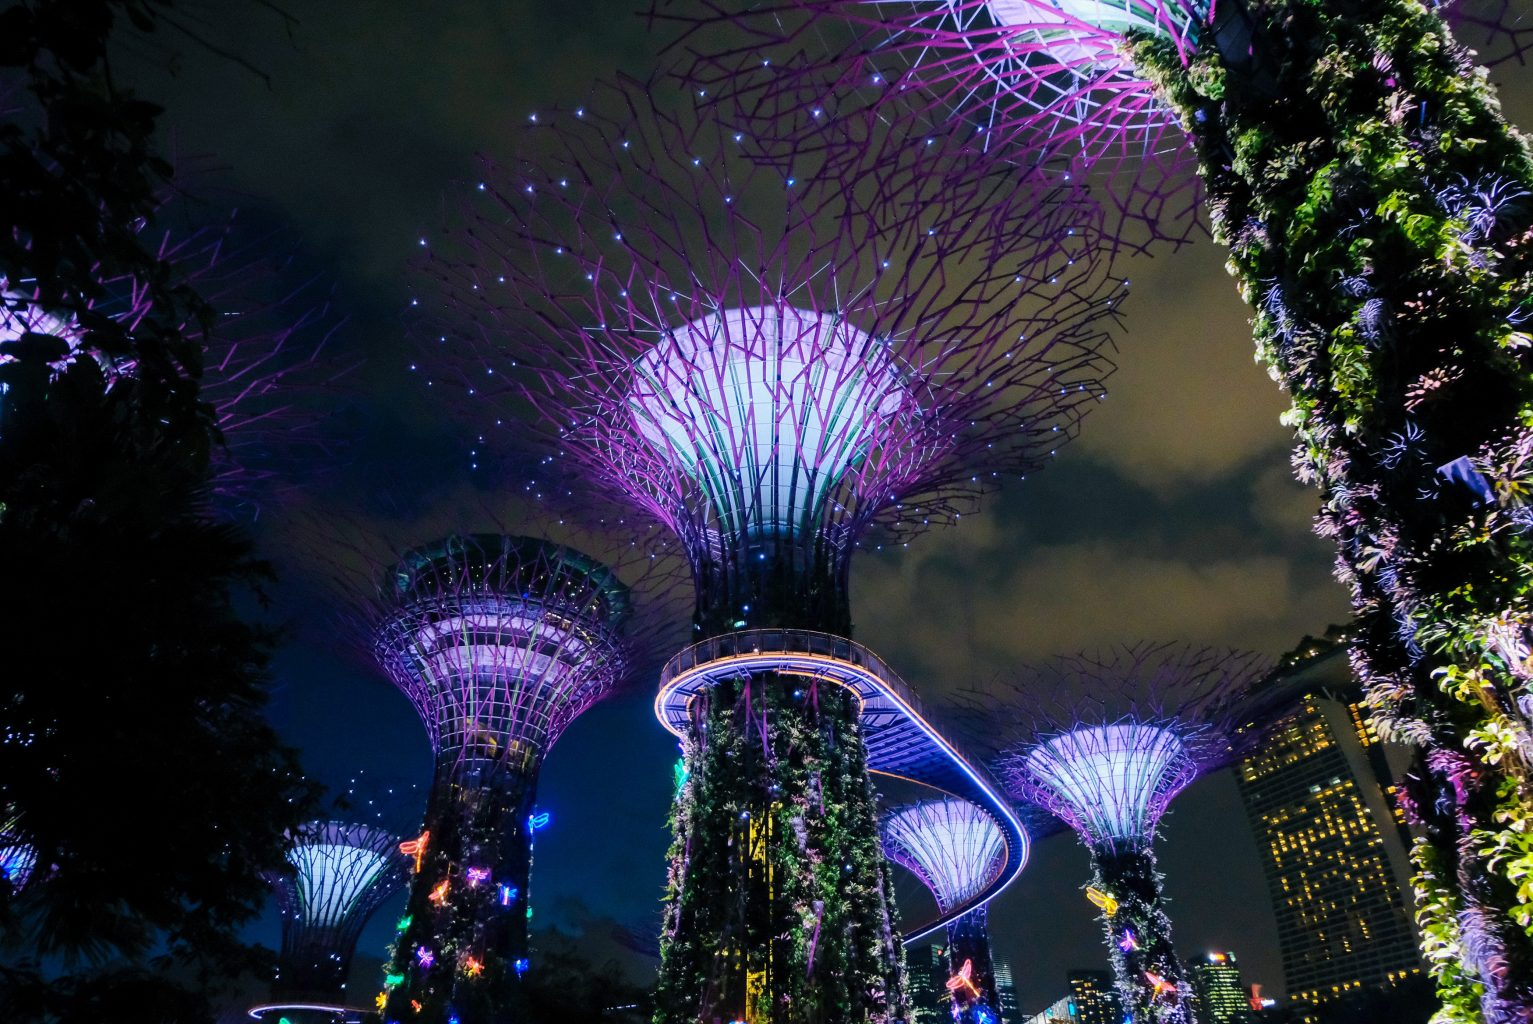 Gardens by the bay singapore flower sculptures